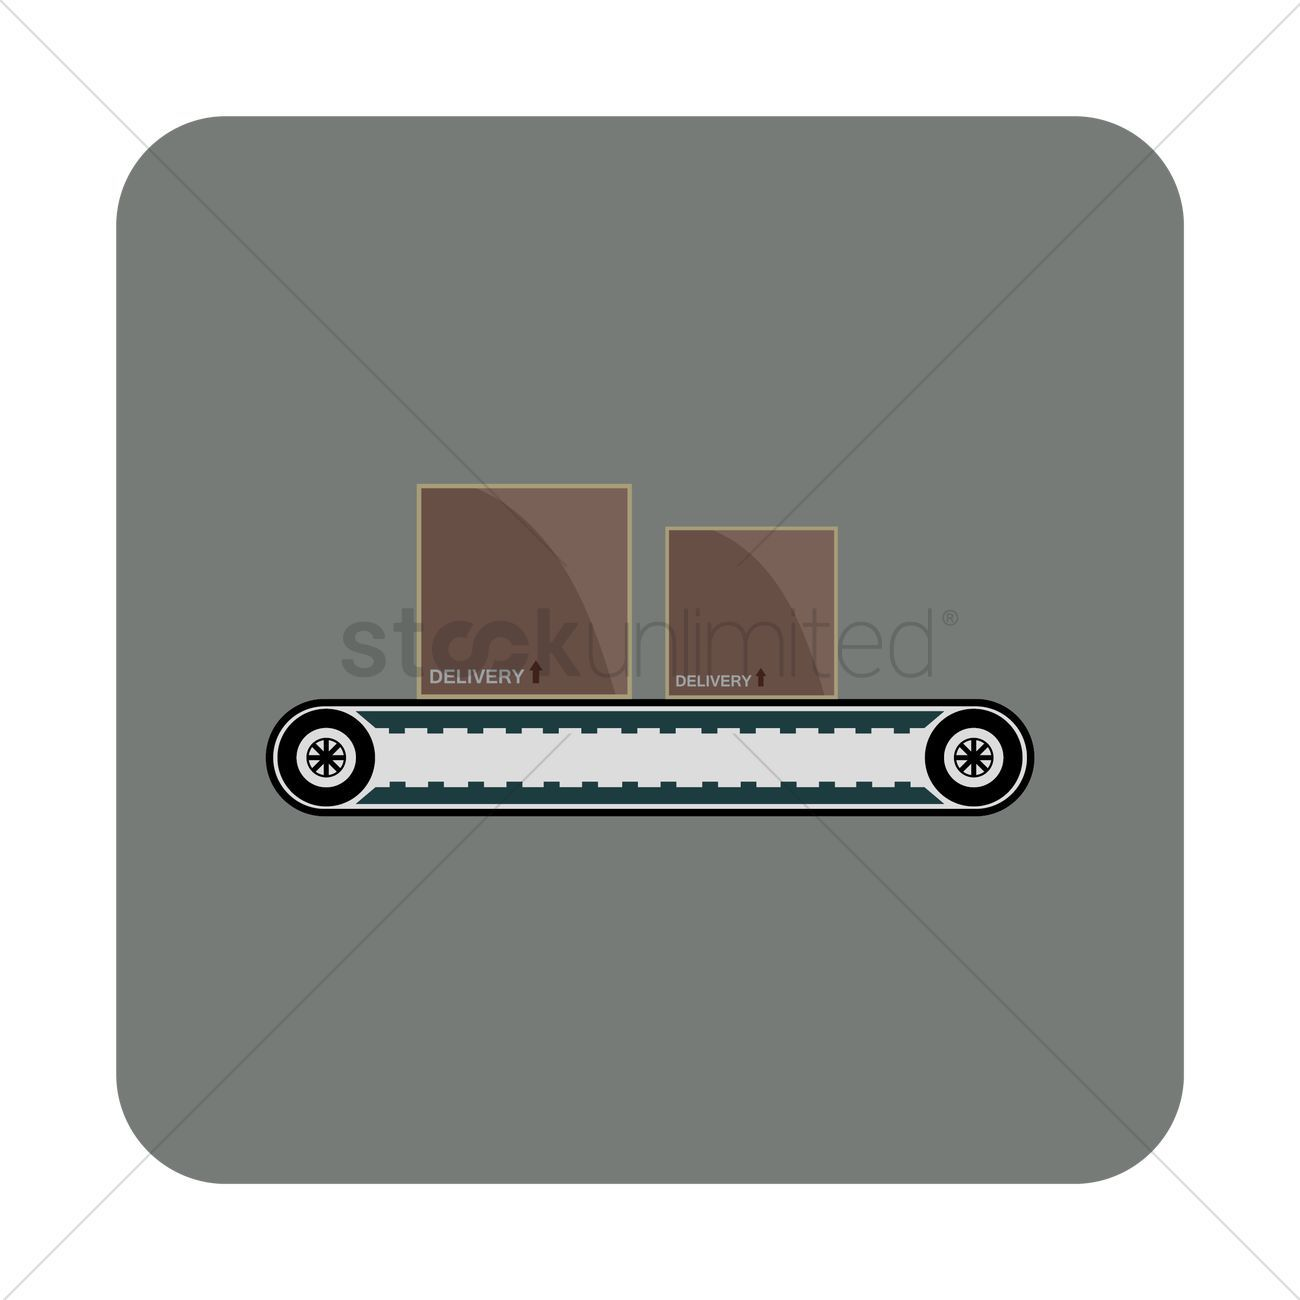 Conveyor Clipart | Free Images at Clker.com - vector clip art online,  royalty free & public domain